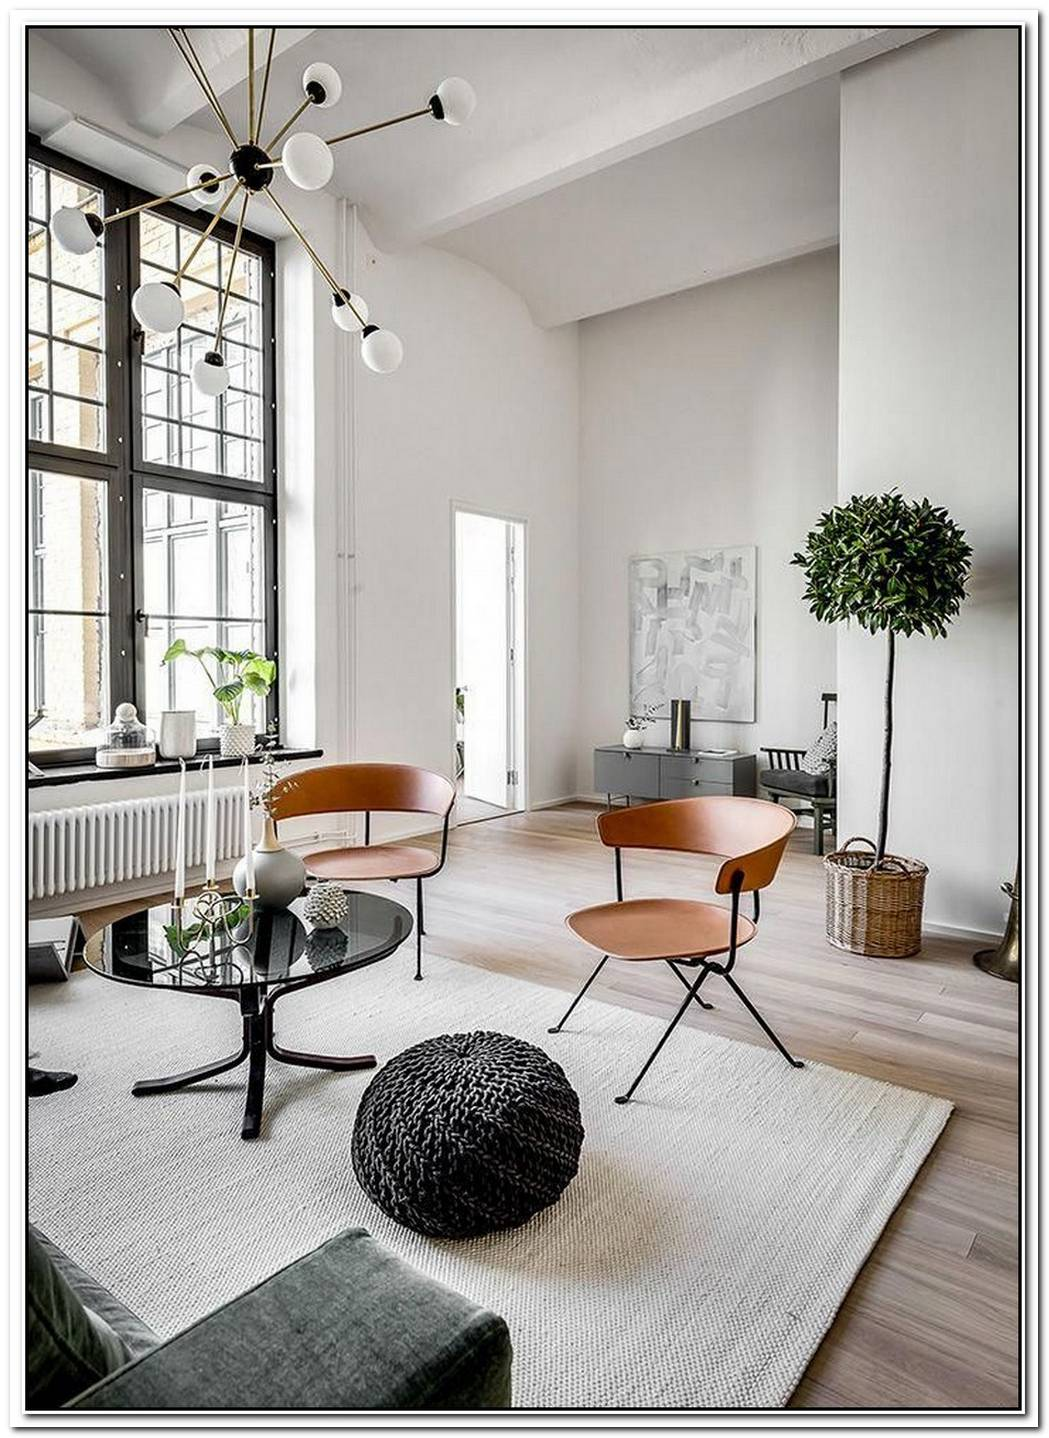 12 Oh So Dreamy Scandinavian Minimalist Interiors